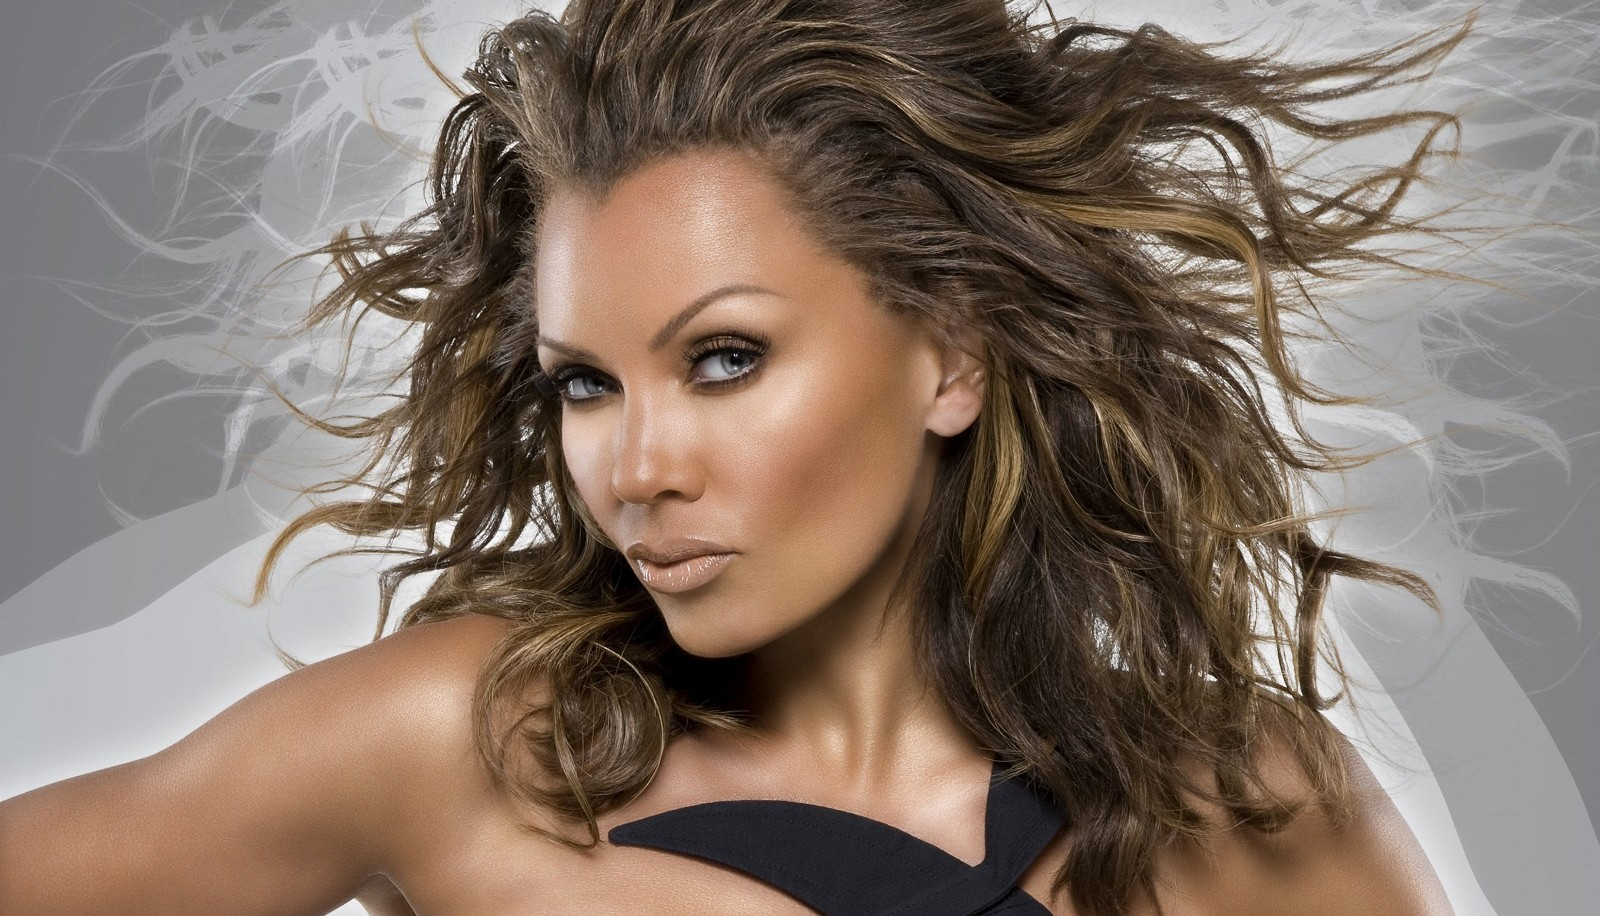 Vanessa Williams is the keynote speaker at Leadership Niagara's April 27 luncheon in Niagara Falls. (Mike Ruiz/Contour).